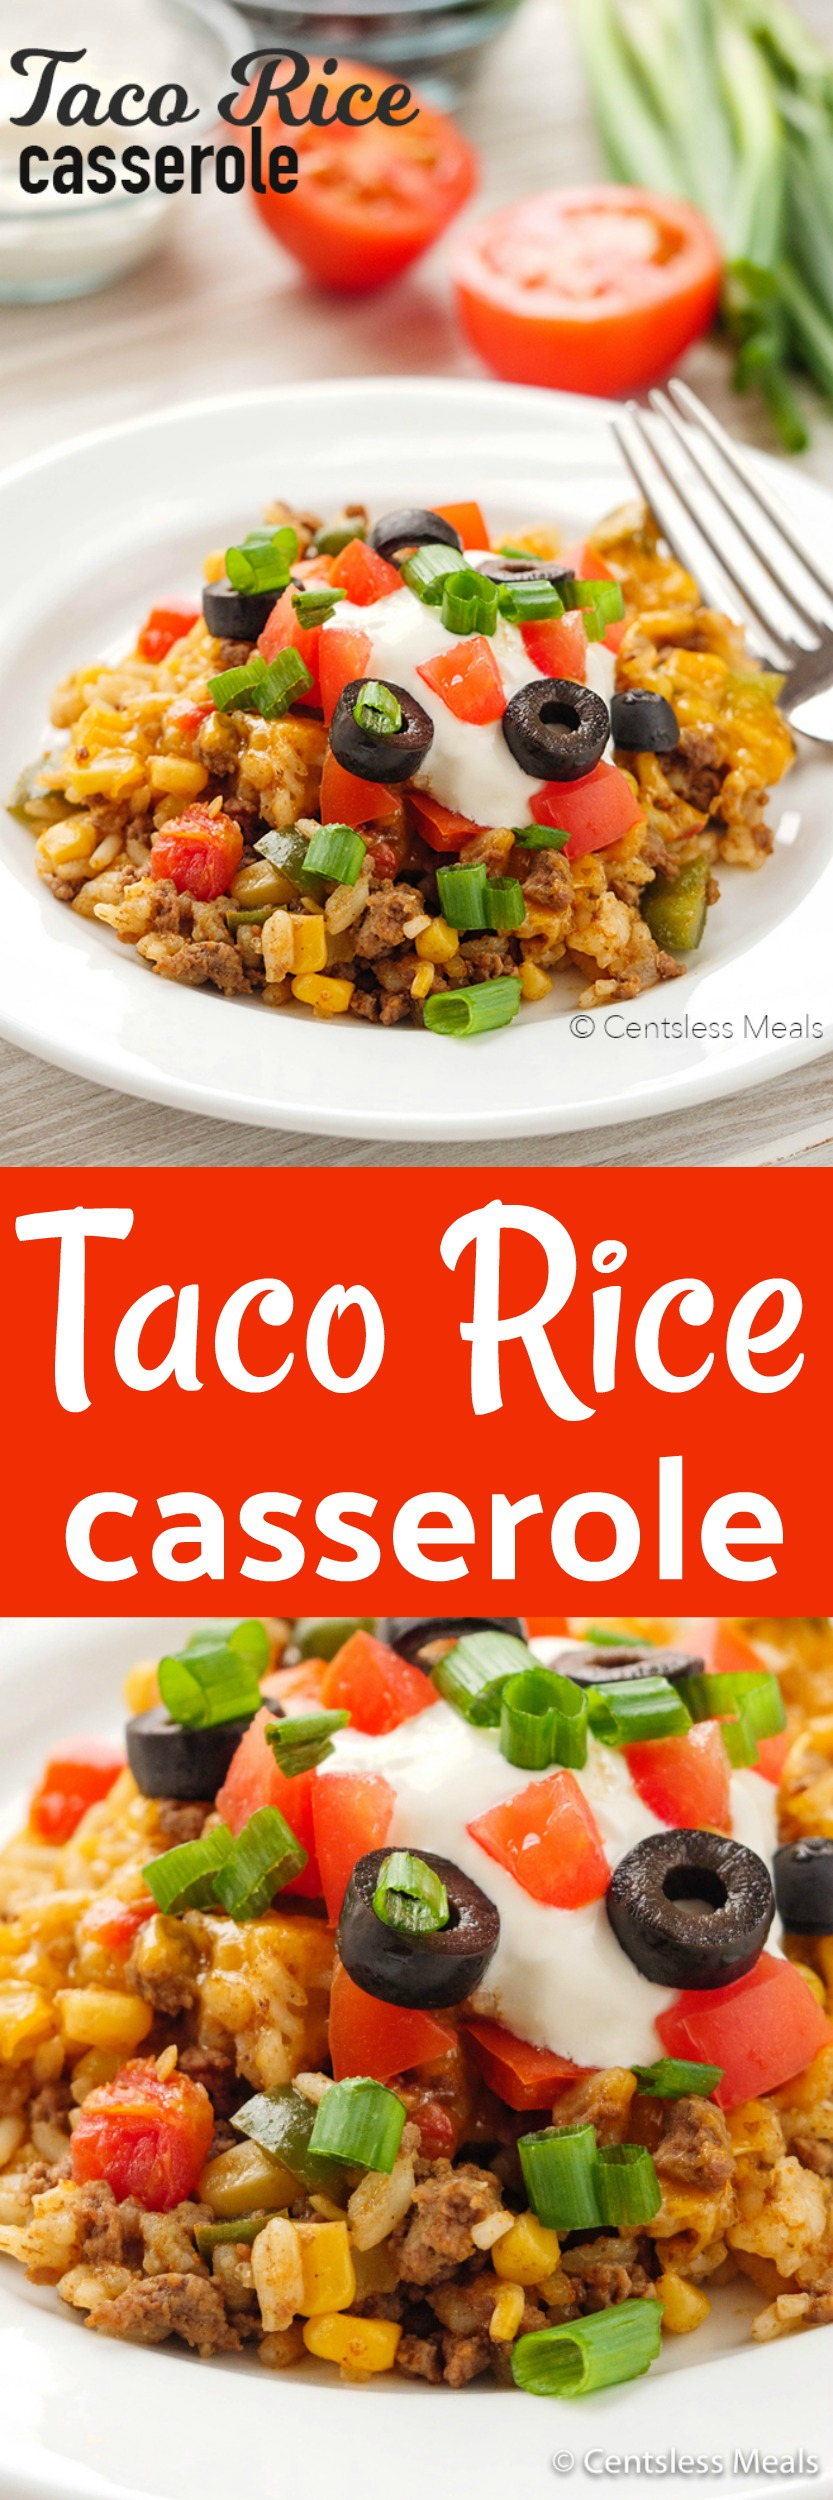 This Easy Taco Casserole is a super easy to make meal idea using taco inspired ingredients such as spicy beef, rice, tomatoes, mexicorn, salsa and topped with loads of cheese. #Easyrecipe #4stepdinner #tacobake #Fresh #Homemade